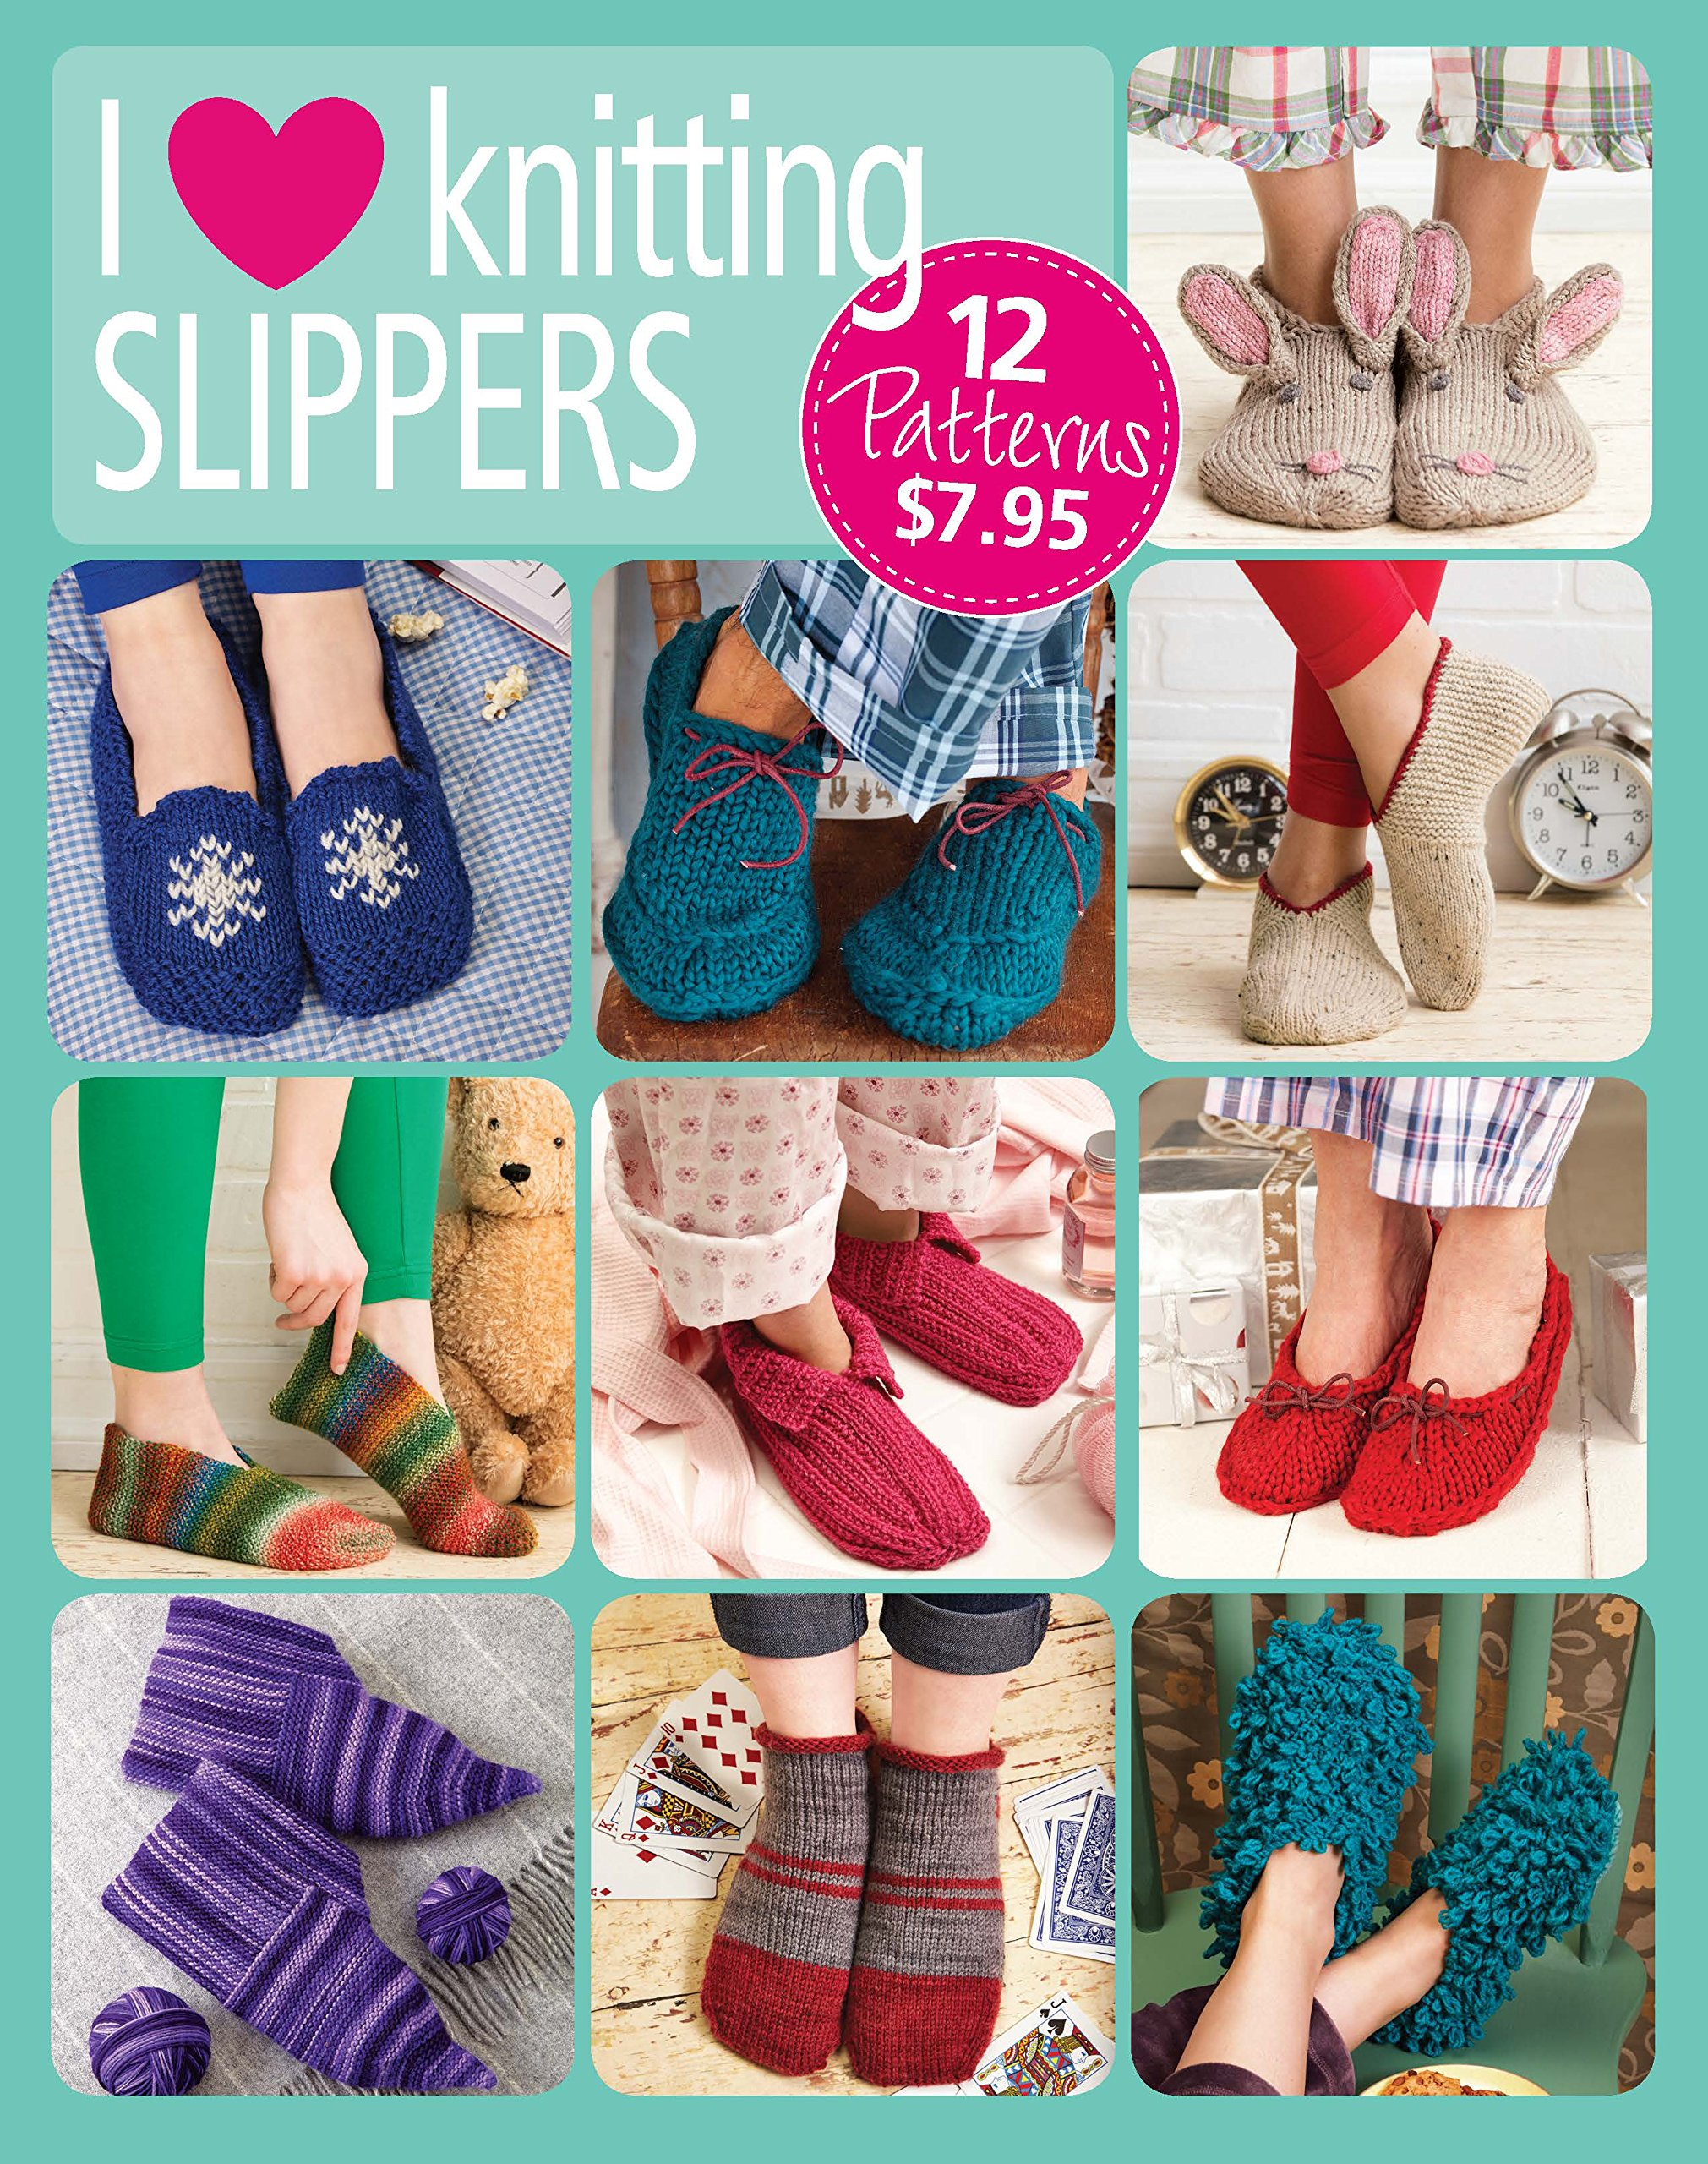 f55a91e8dfe I Love Knitting Slippers  The Editors of Go-Crafty  9781640210196 ...